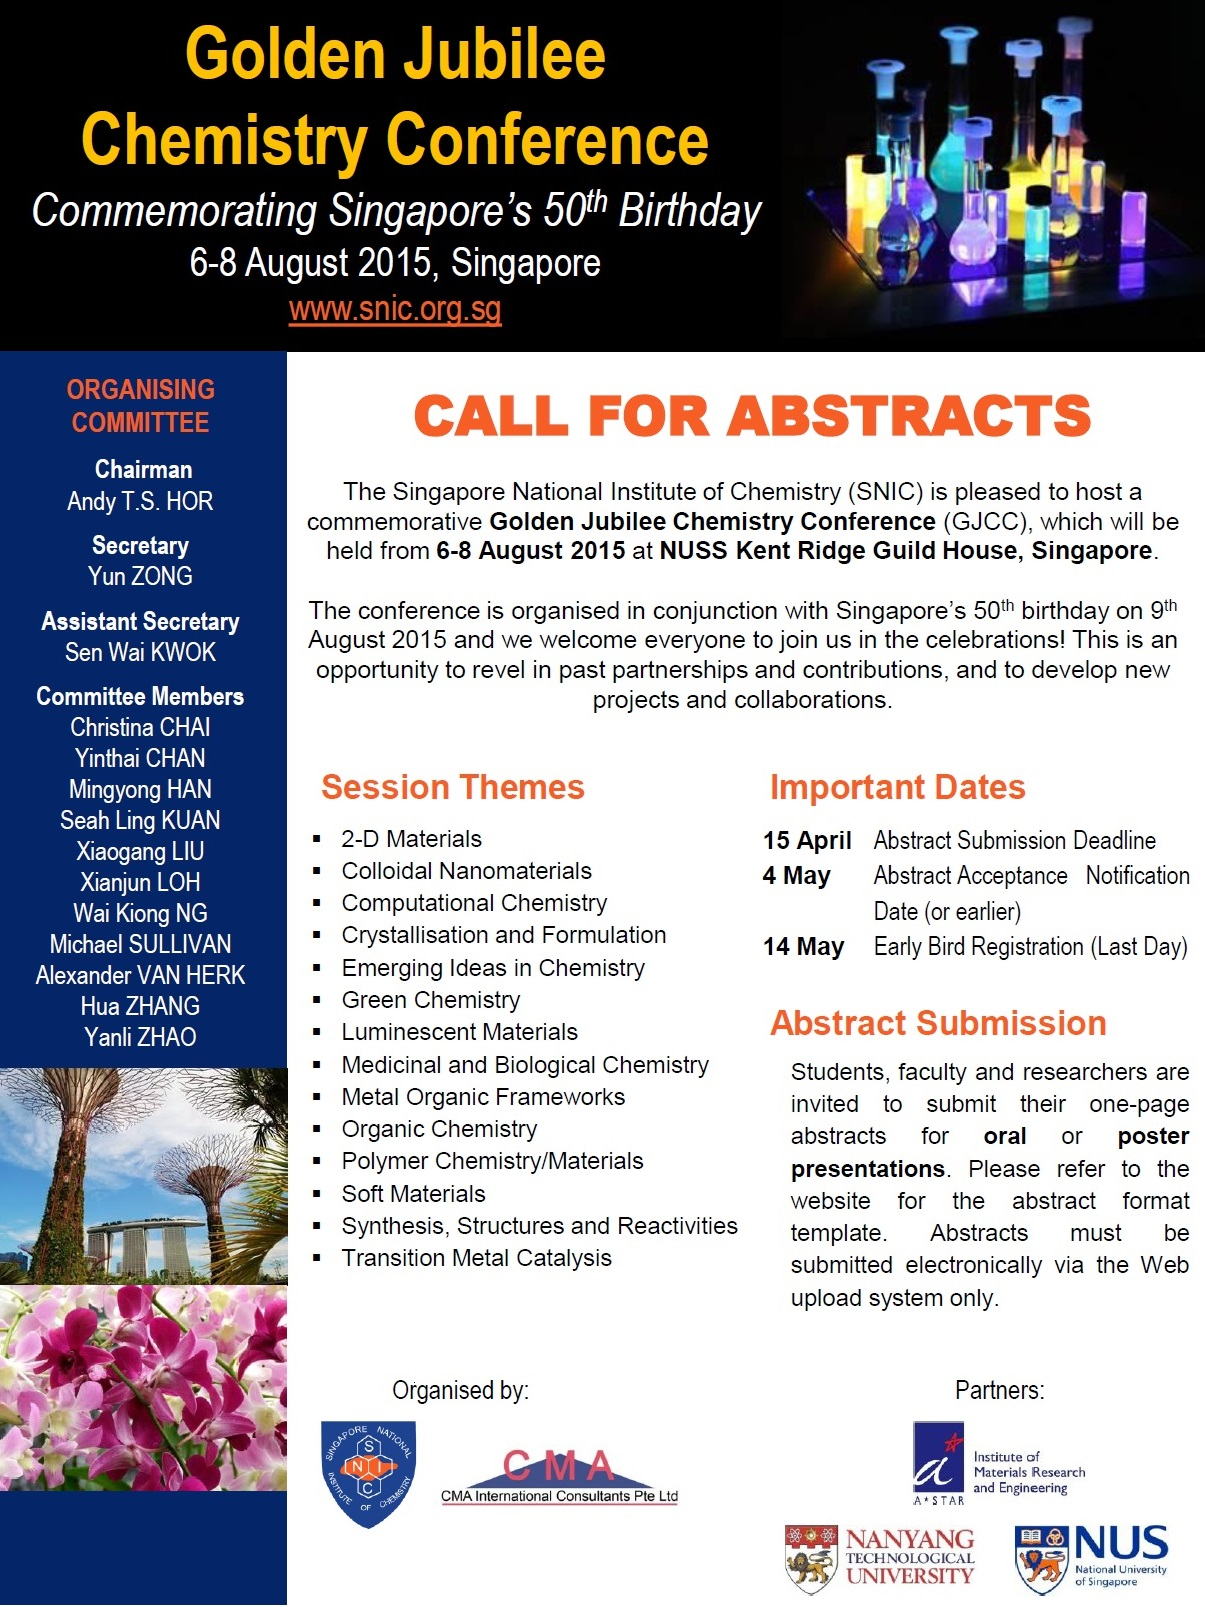 Call for Abstracts Flyer - Copy